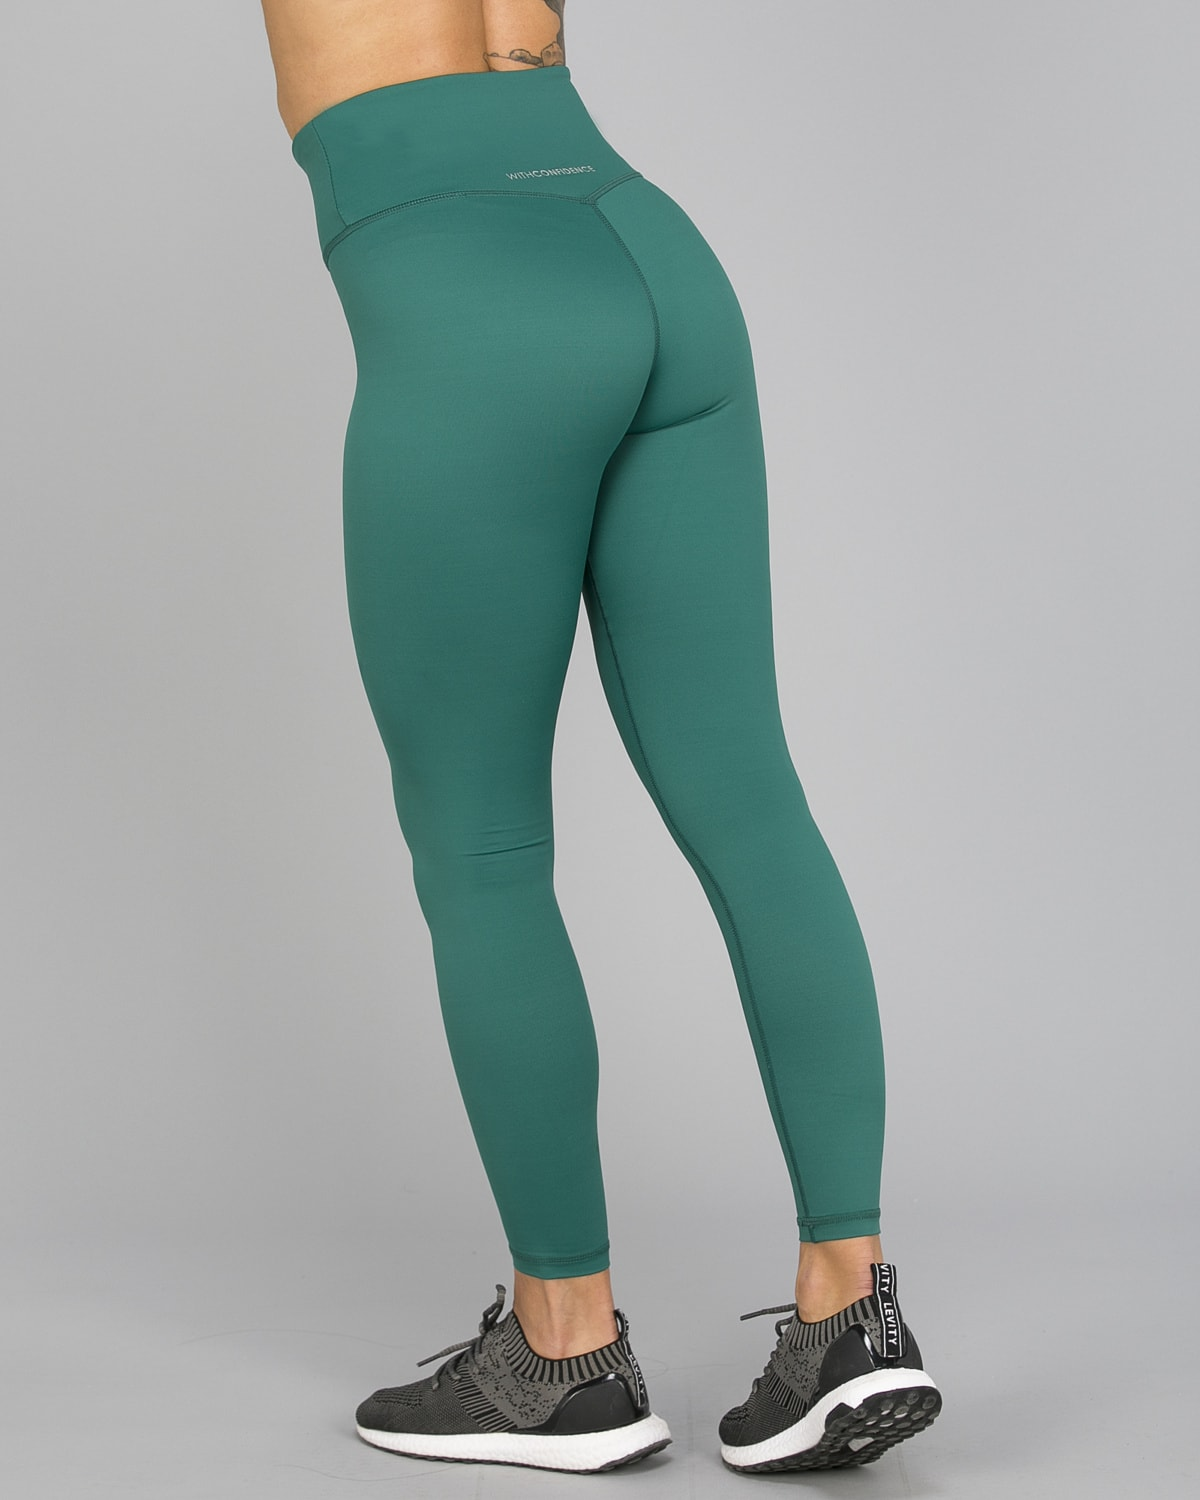 Workout Empire – With Confidence Shape Leggings – Emerald Green6